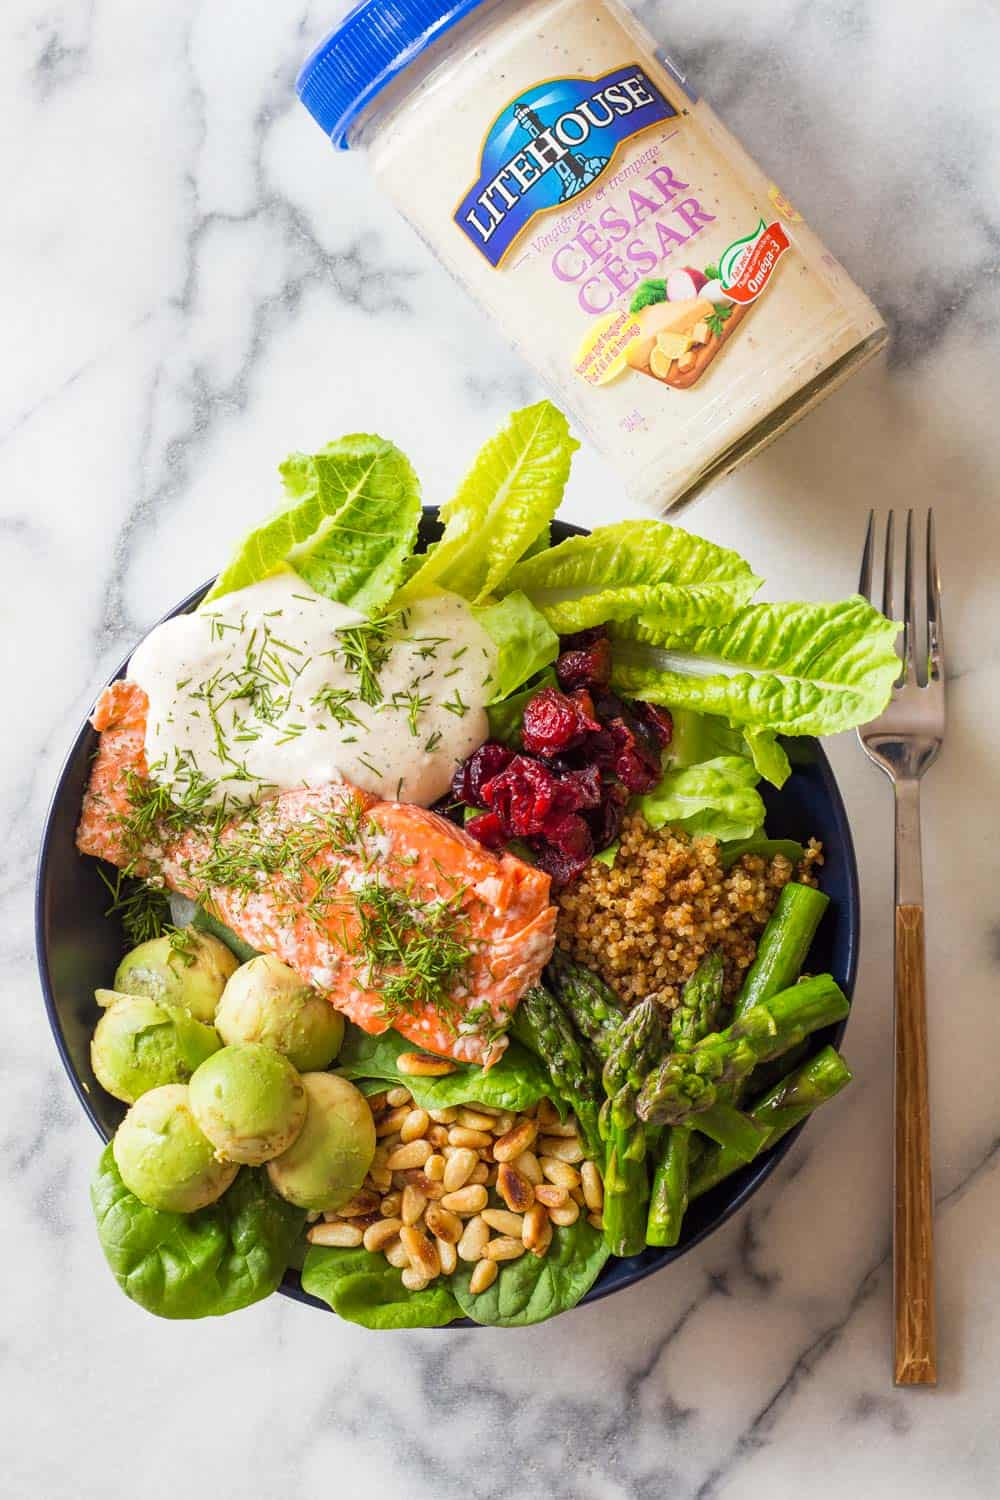 Sockeye Salmon is the best fish in the world. Pair it with lettuce, asparagus, pine nuts, cranberries, avocado & drizzle the best salad dressing ever on it.